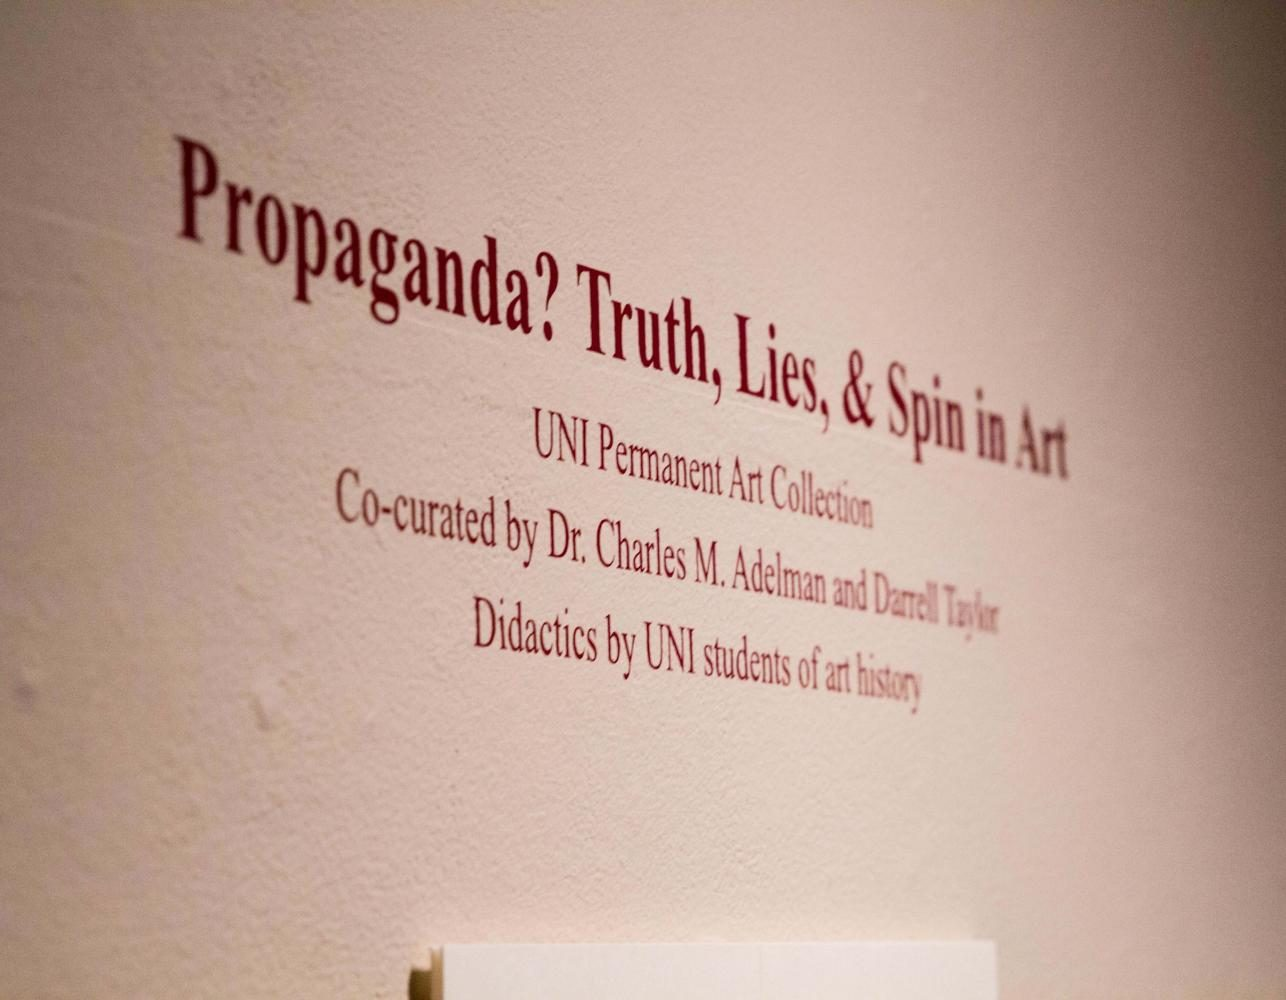 The+%22Propaganda%3F+Truth%2C+Lies+%26+Spin+in+Art%22+exhibit+currently+being+shown+in+the+Kamerick+Art+Building+features+art+pieces+researched+by+UNI+art+history+students.